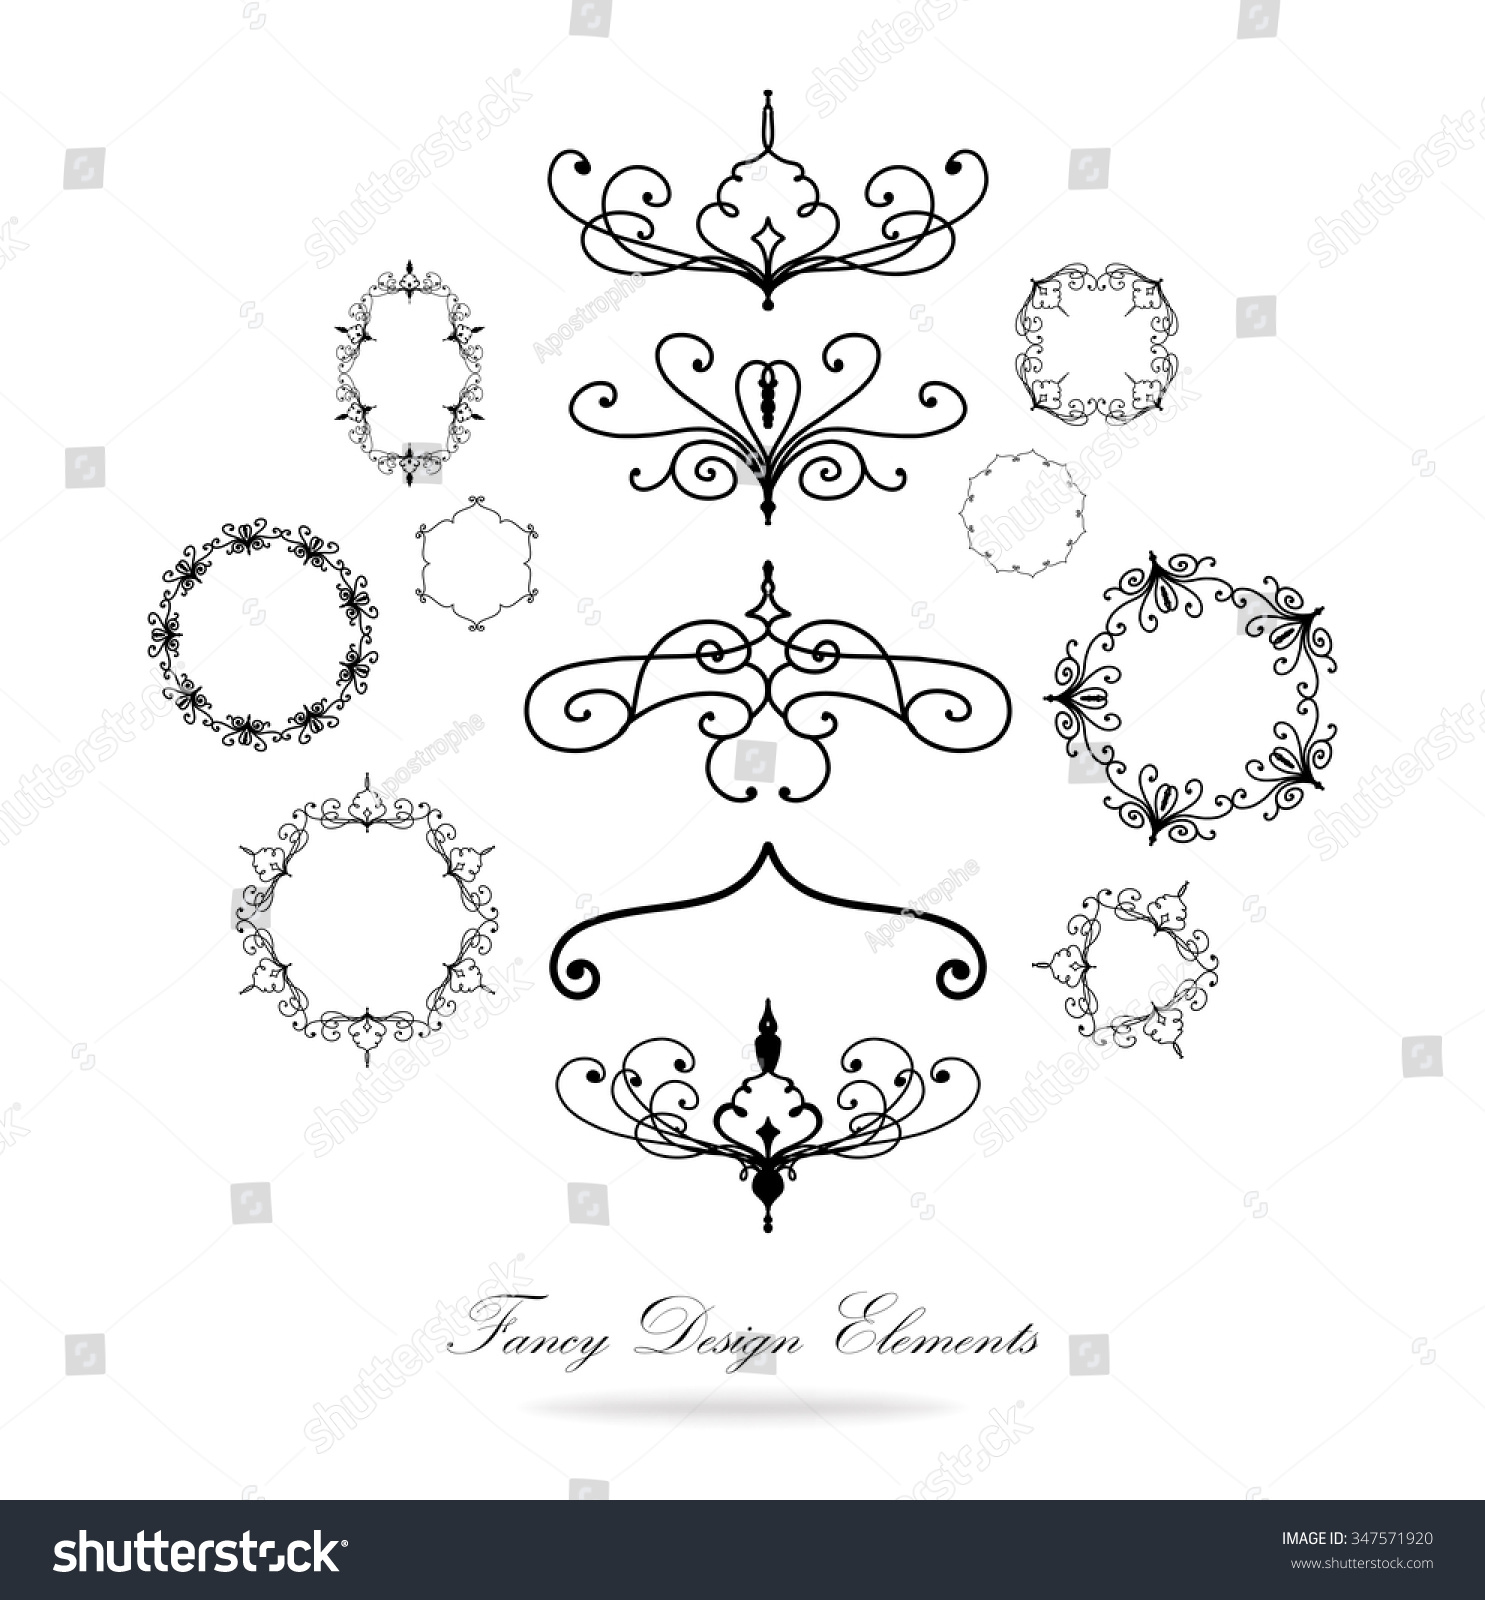 Victorian Design Elements design elements vector black white borders stock vector 347571920